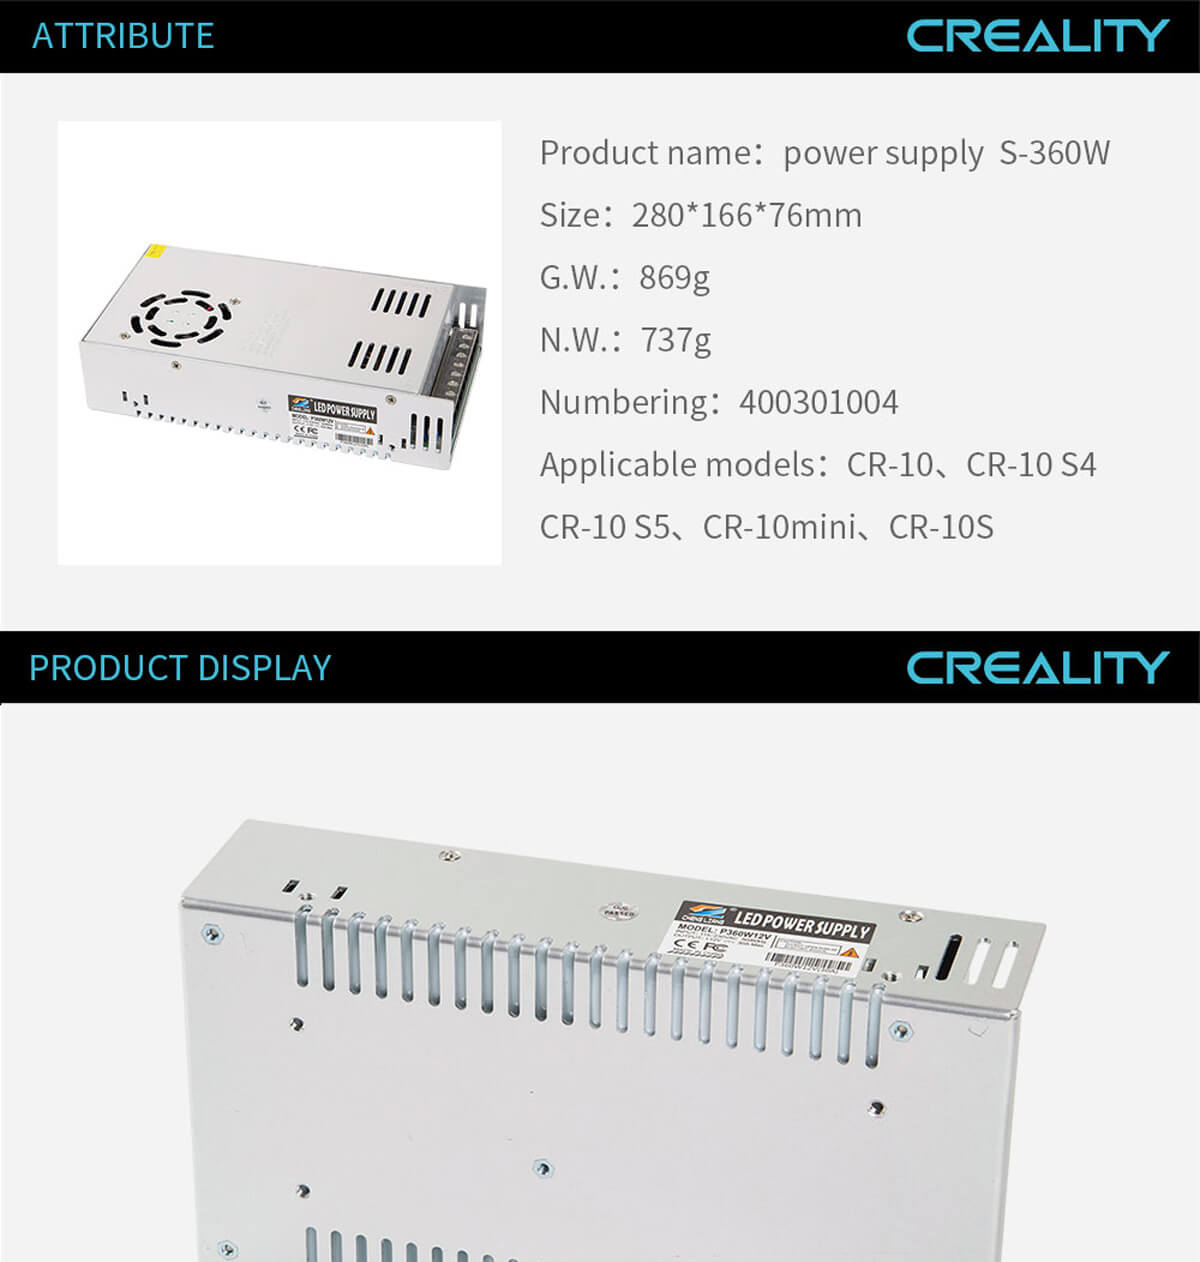 creality-3d-printer-Power-Supply-S-360W-11